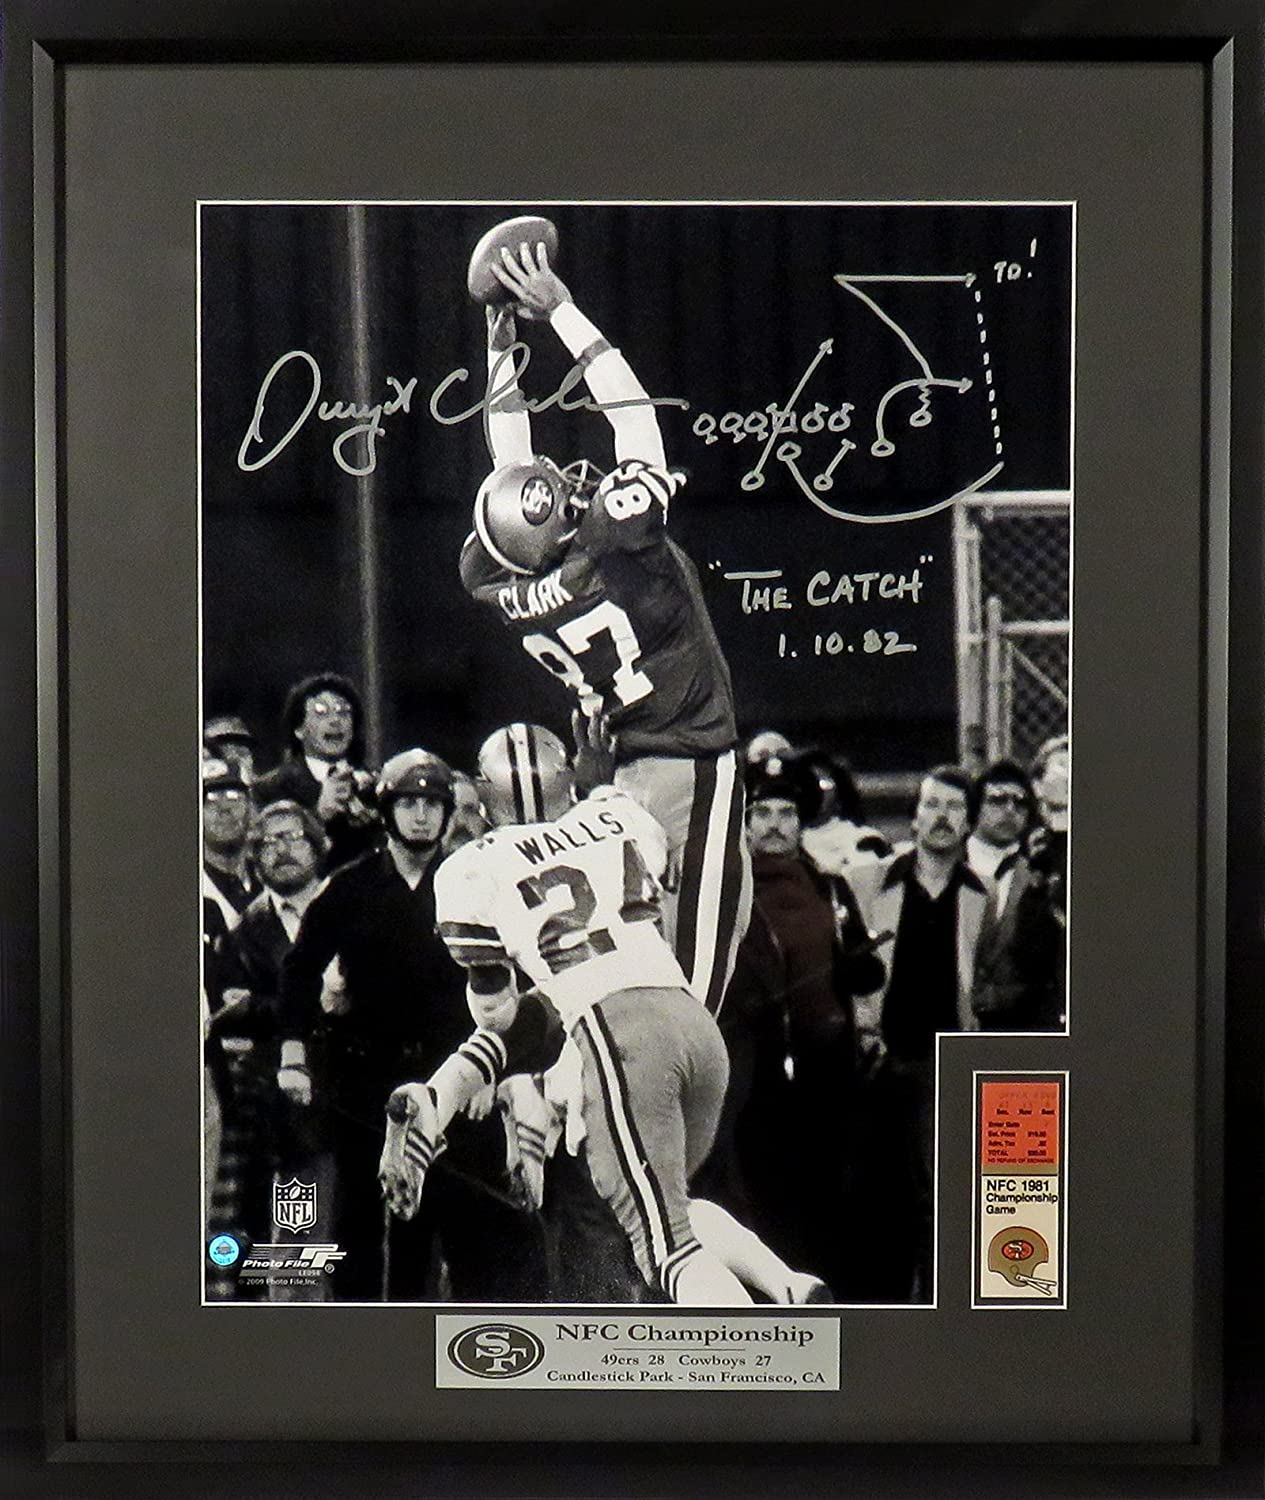 """Dwight Clark Framed & Autographed """"The Catch"""" 16x20 (vertical) Photograph  w/ Play Diagram, The Catch and Date Inscription at Amazon's Sports  Collectibles ..."""